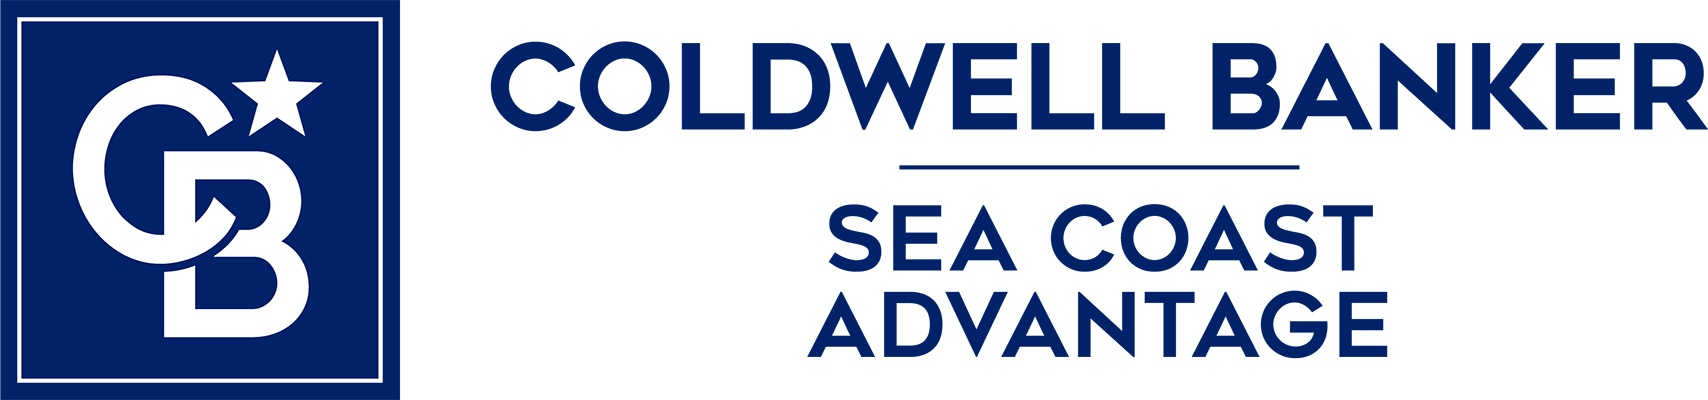 Jordy Rawl - Coldwell Banker Sea Coast Advantage Realty